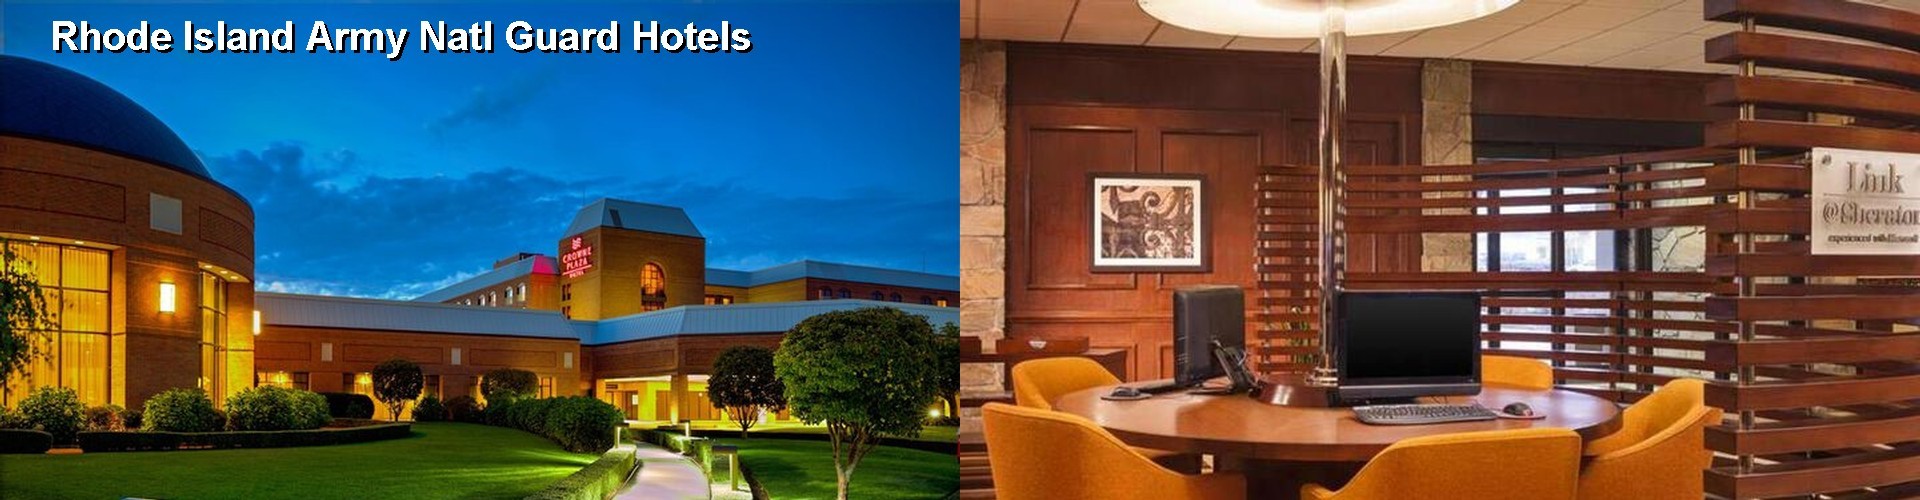 5 Best Hotels near Rhode Island Army Natl Guard